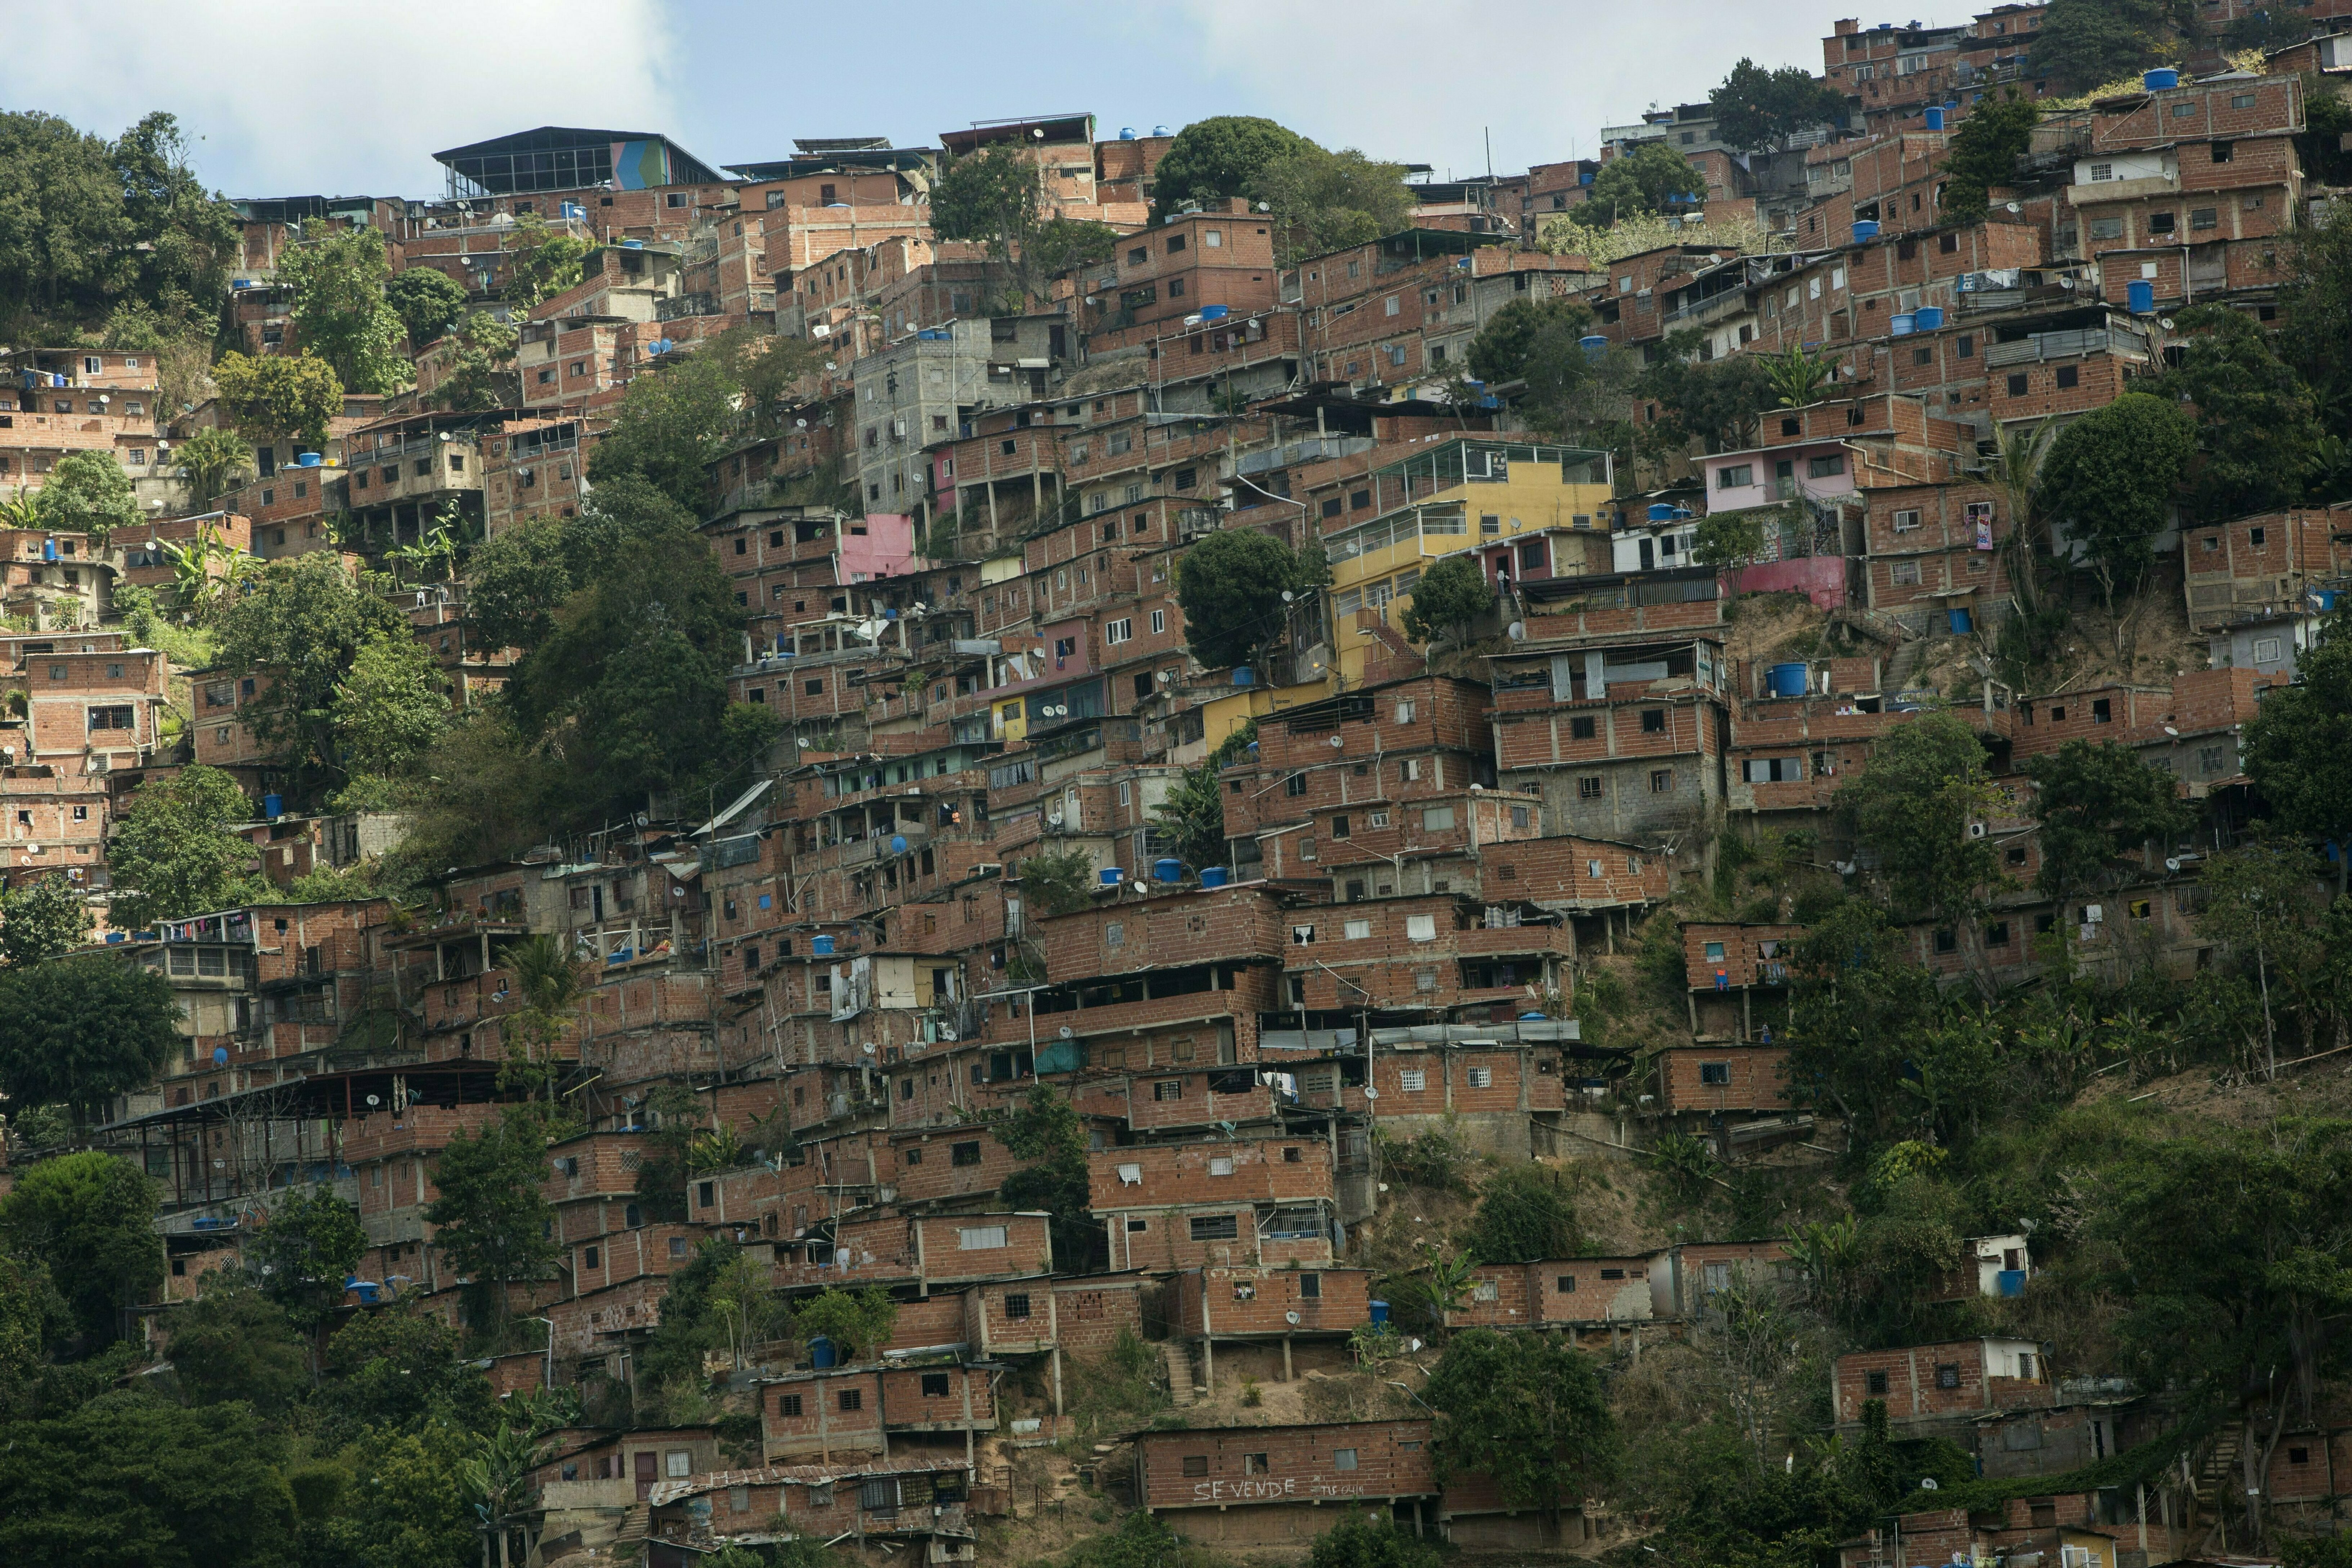 A portion of the Petare shanty town, one of Latin America's largest slums, is seen in Caracas, Venezuela, Feb. 14, 2019.